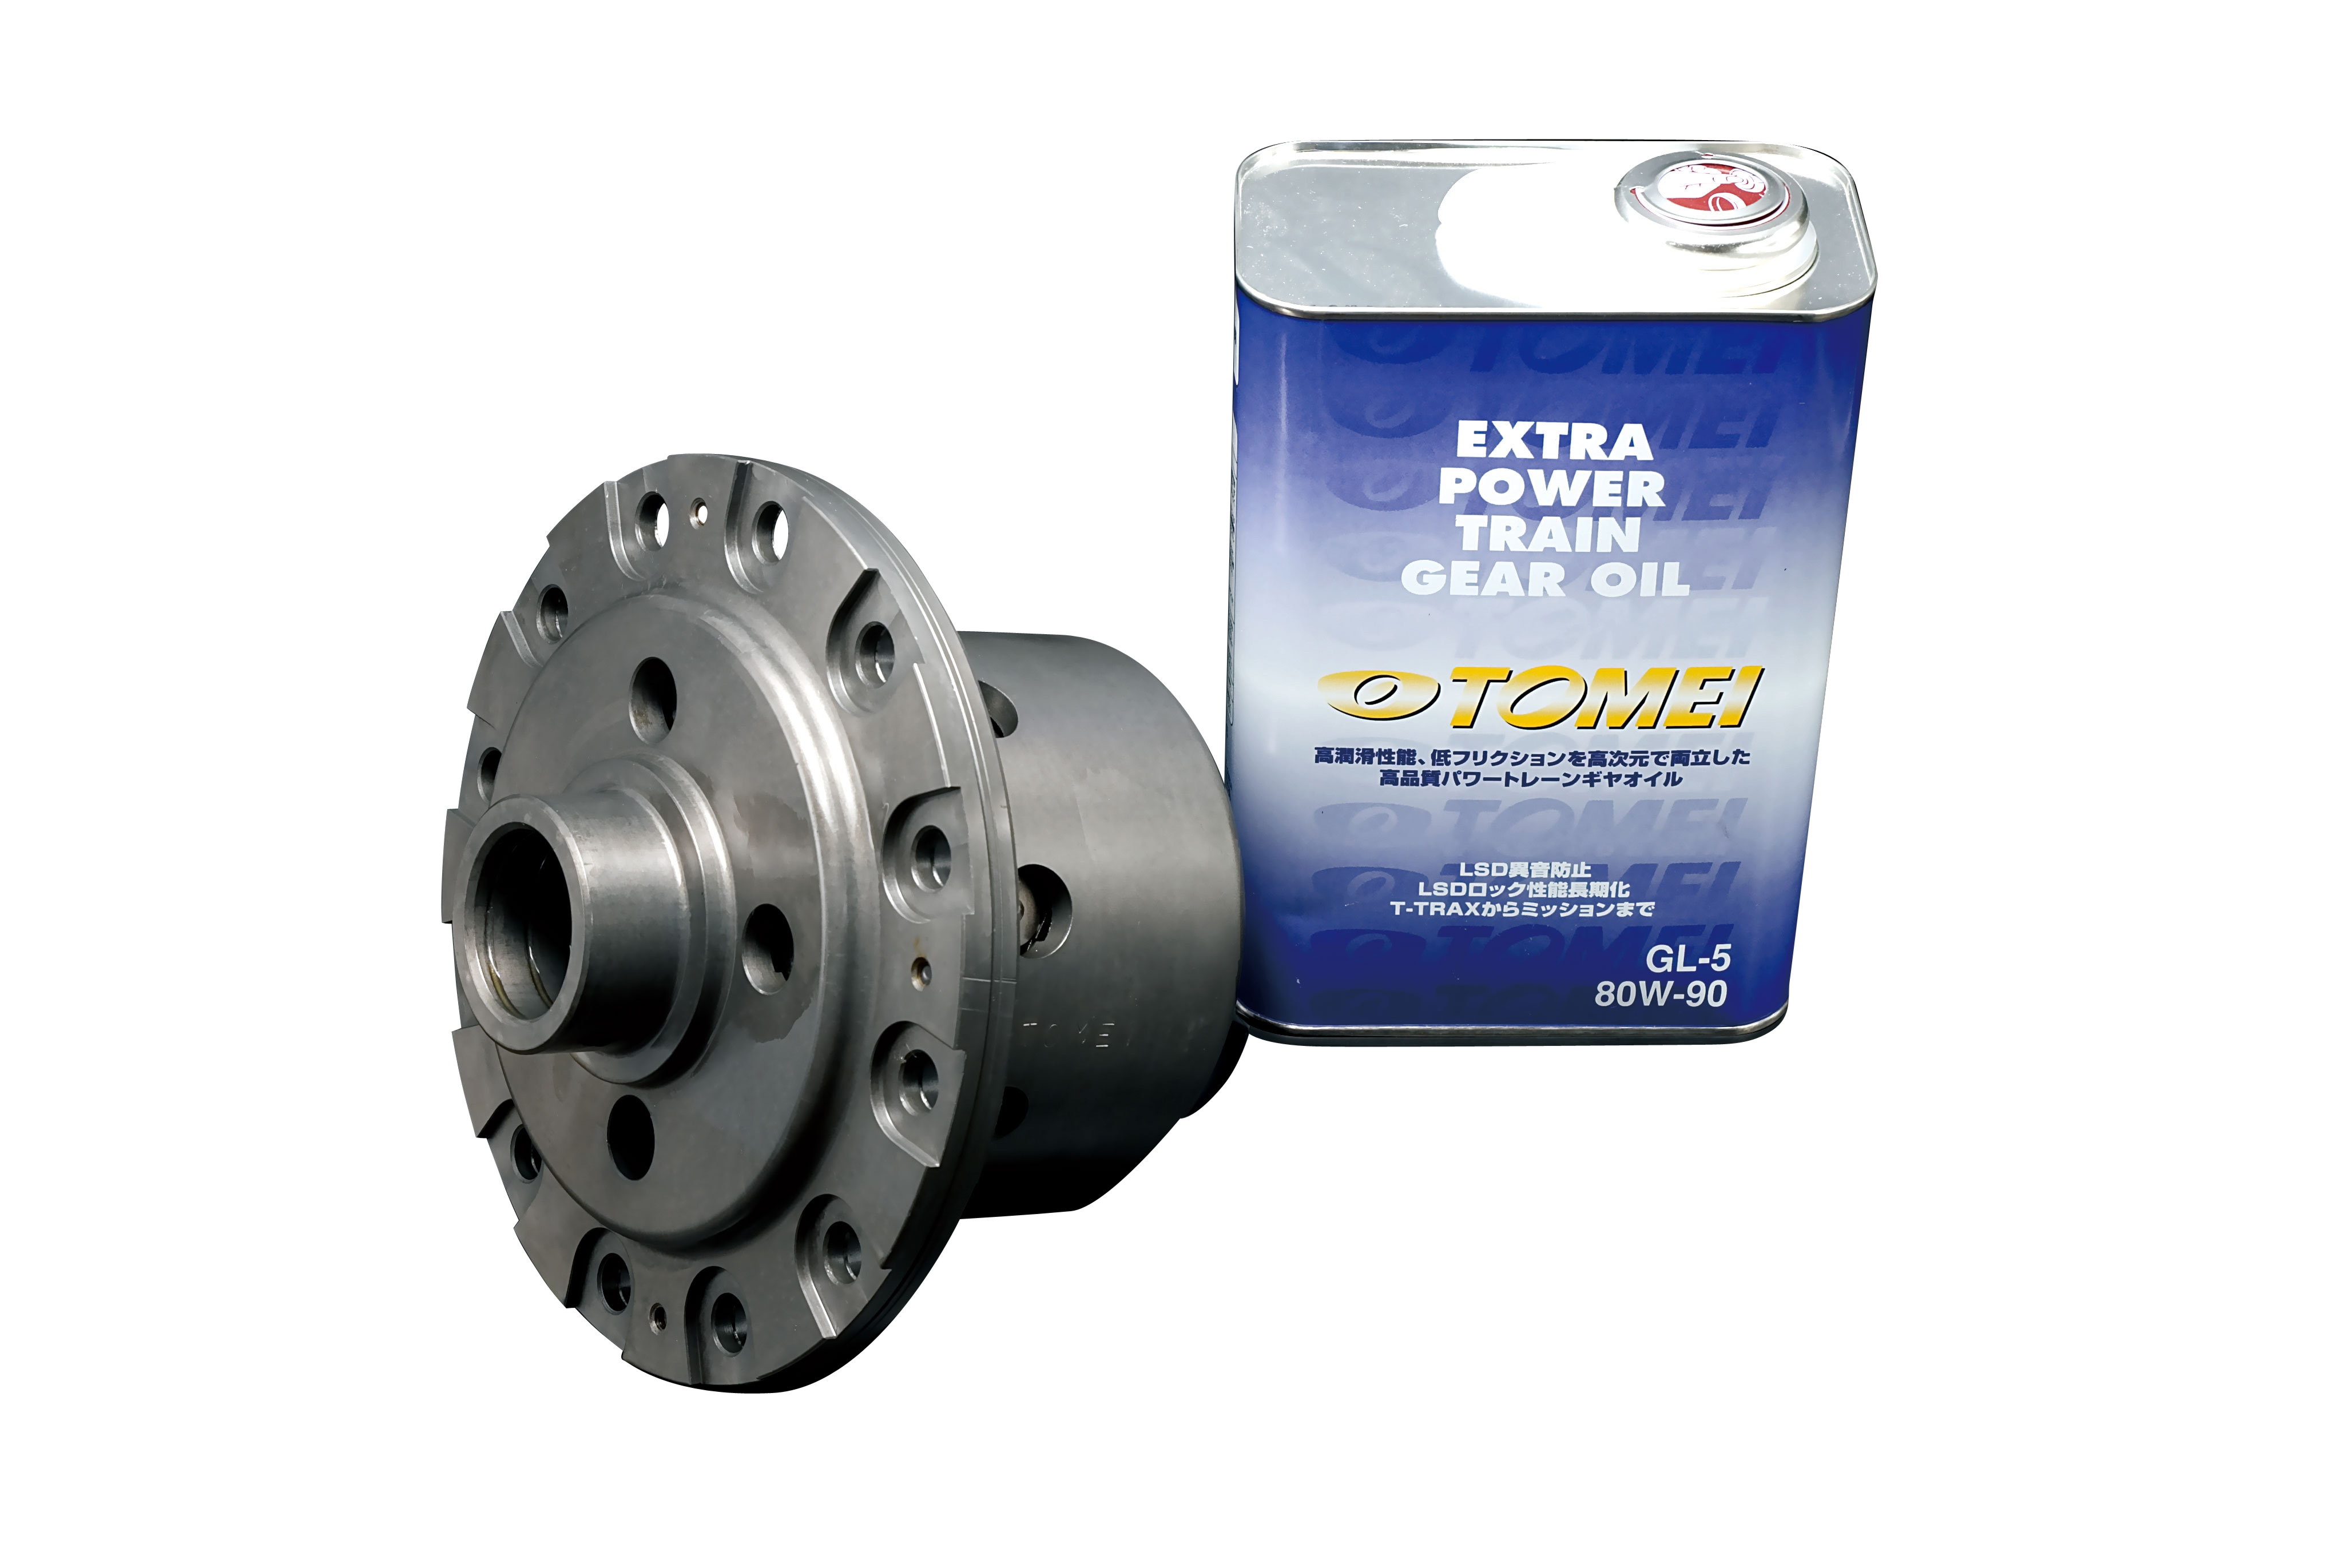 Tomei ZB2 2-Way LSD Kit Technical Trax Advance For Non-Turbo Mazda RX-7 FC3S, Mazda Roadster/MX-5 NA8C, NB8C, NB6C